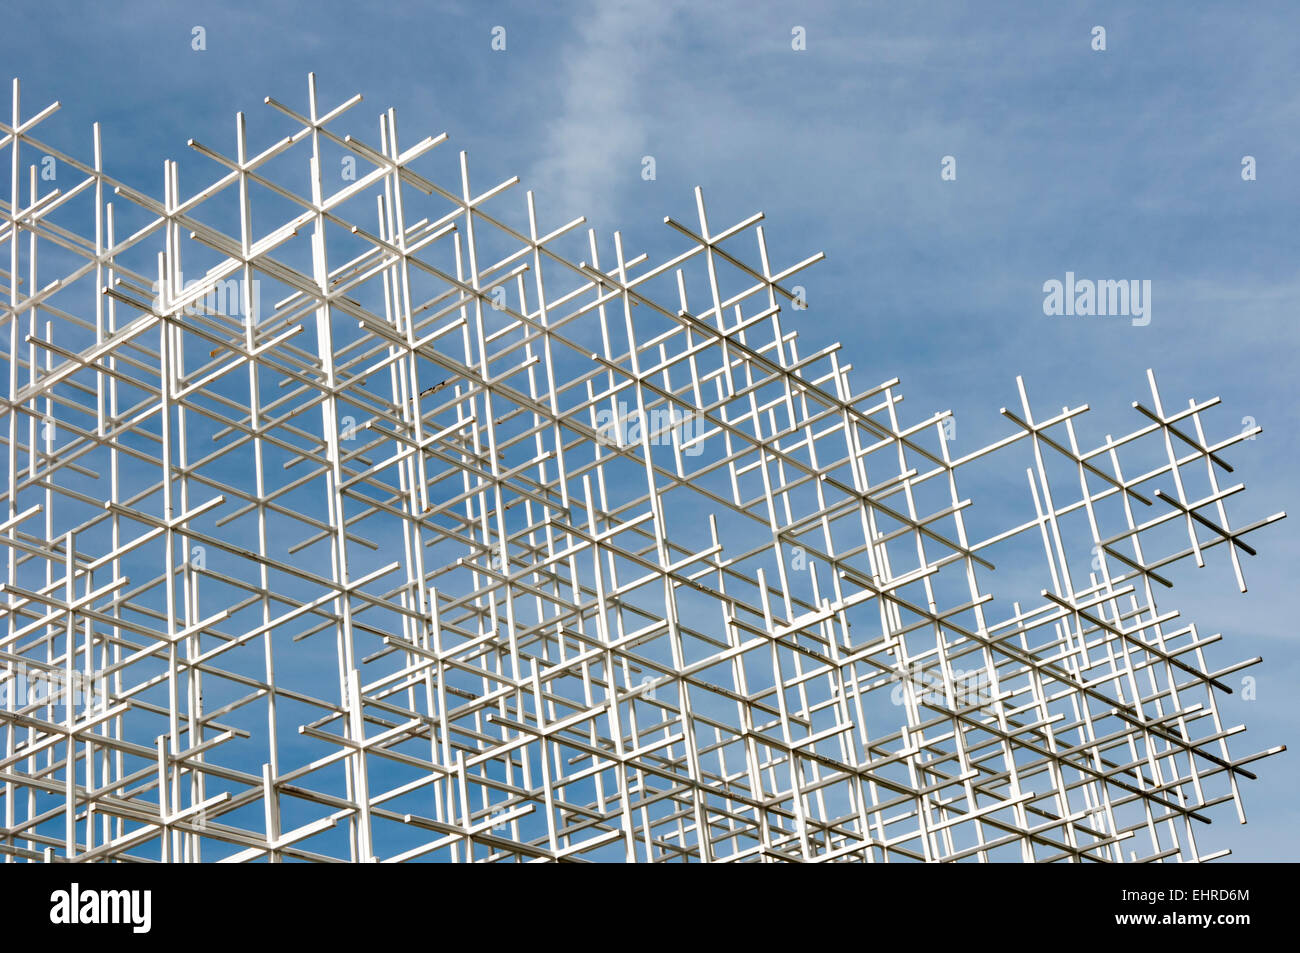 A detail of the 2013 Serpentine Gallery Summer Pavilion designed by the Japanese architect Sou Fujimoto. - Stock Image